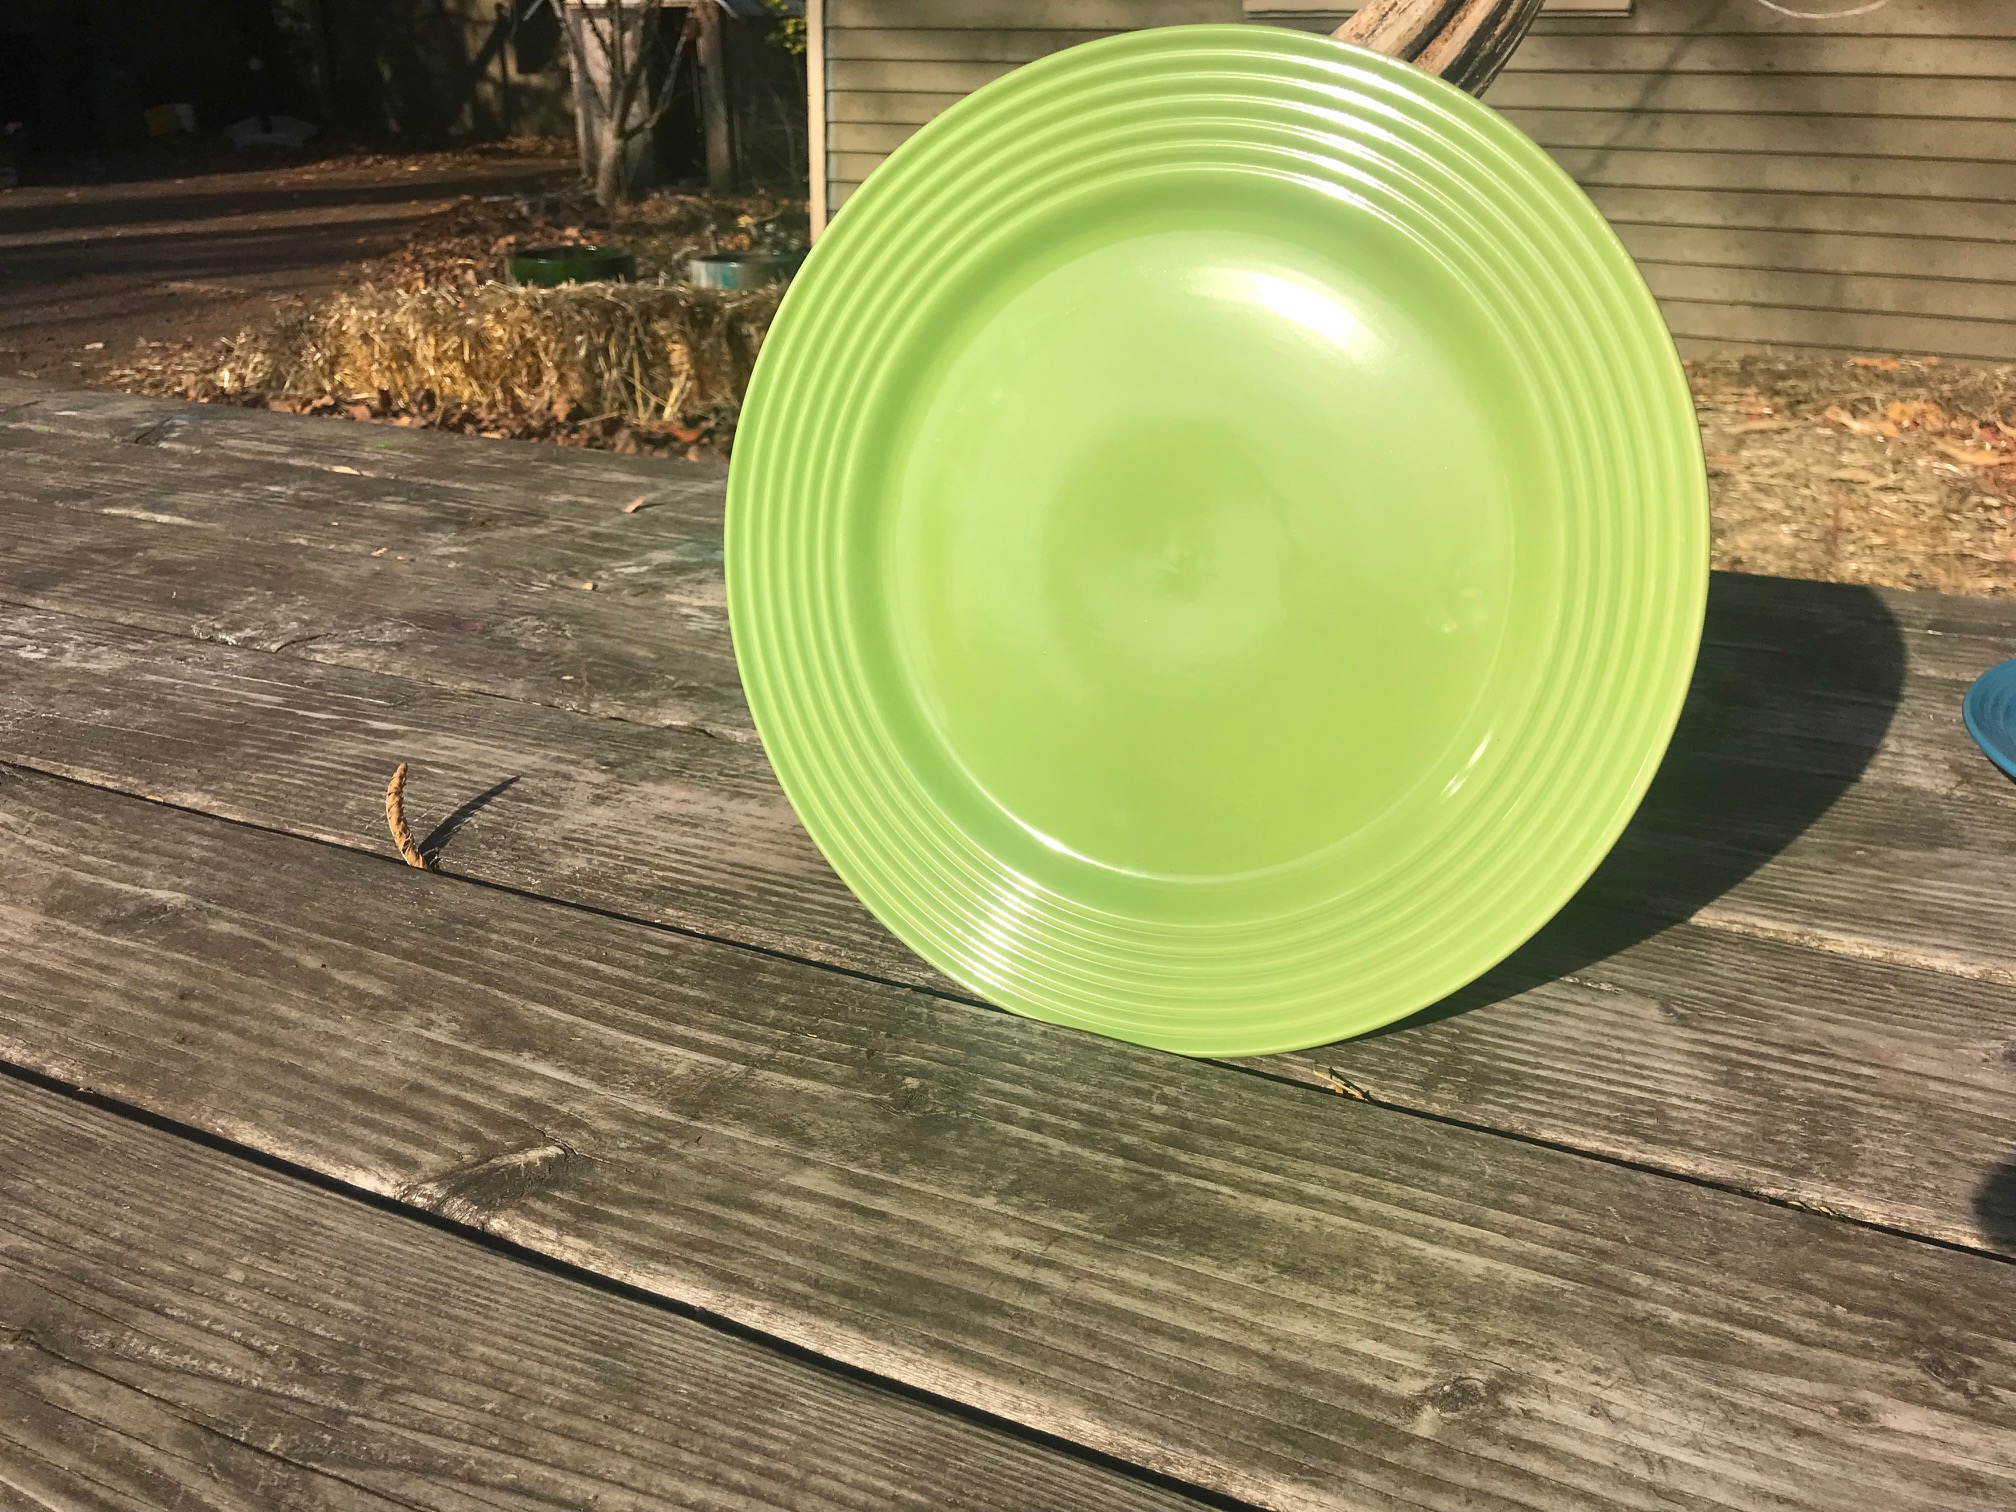 "2018 Dollar Tree Store Royal Norfolk Green Glazed Ceramic Plate With Ridges: 31 ppm Lead (""Lead Safe"")"